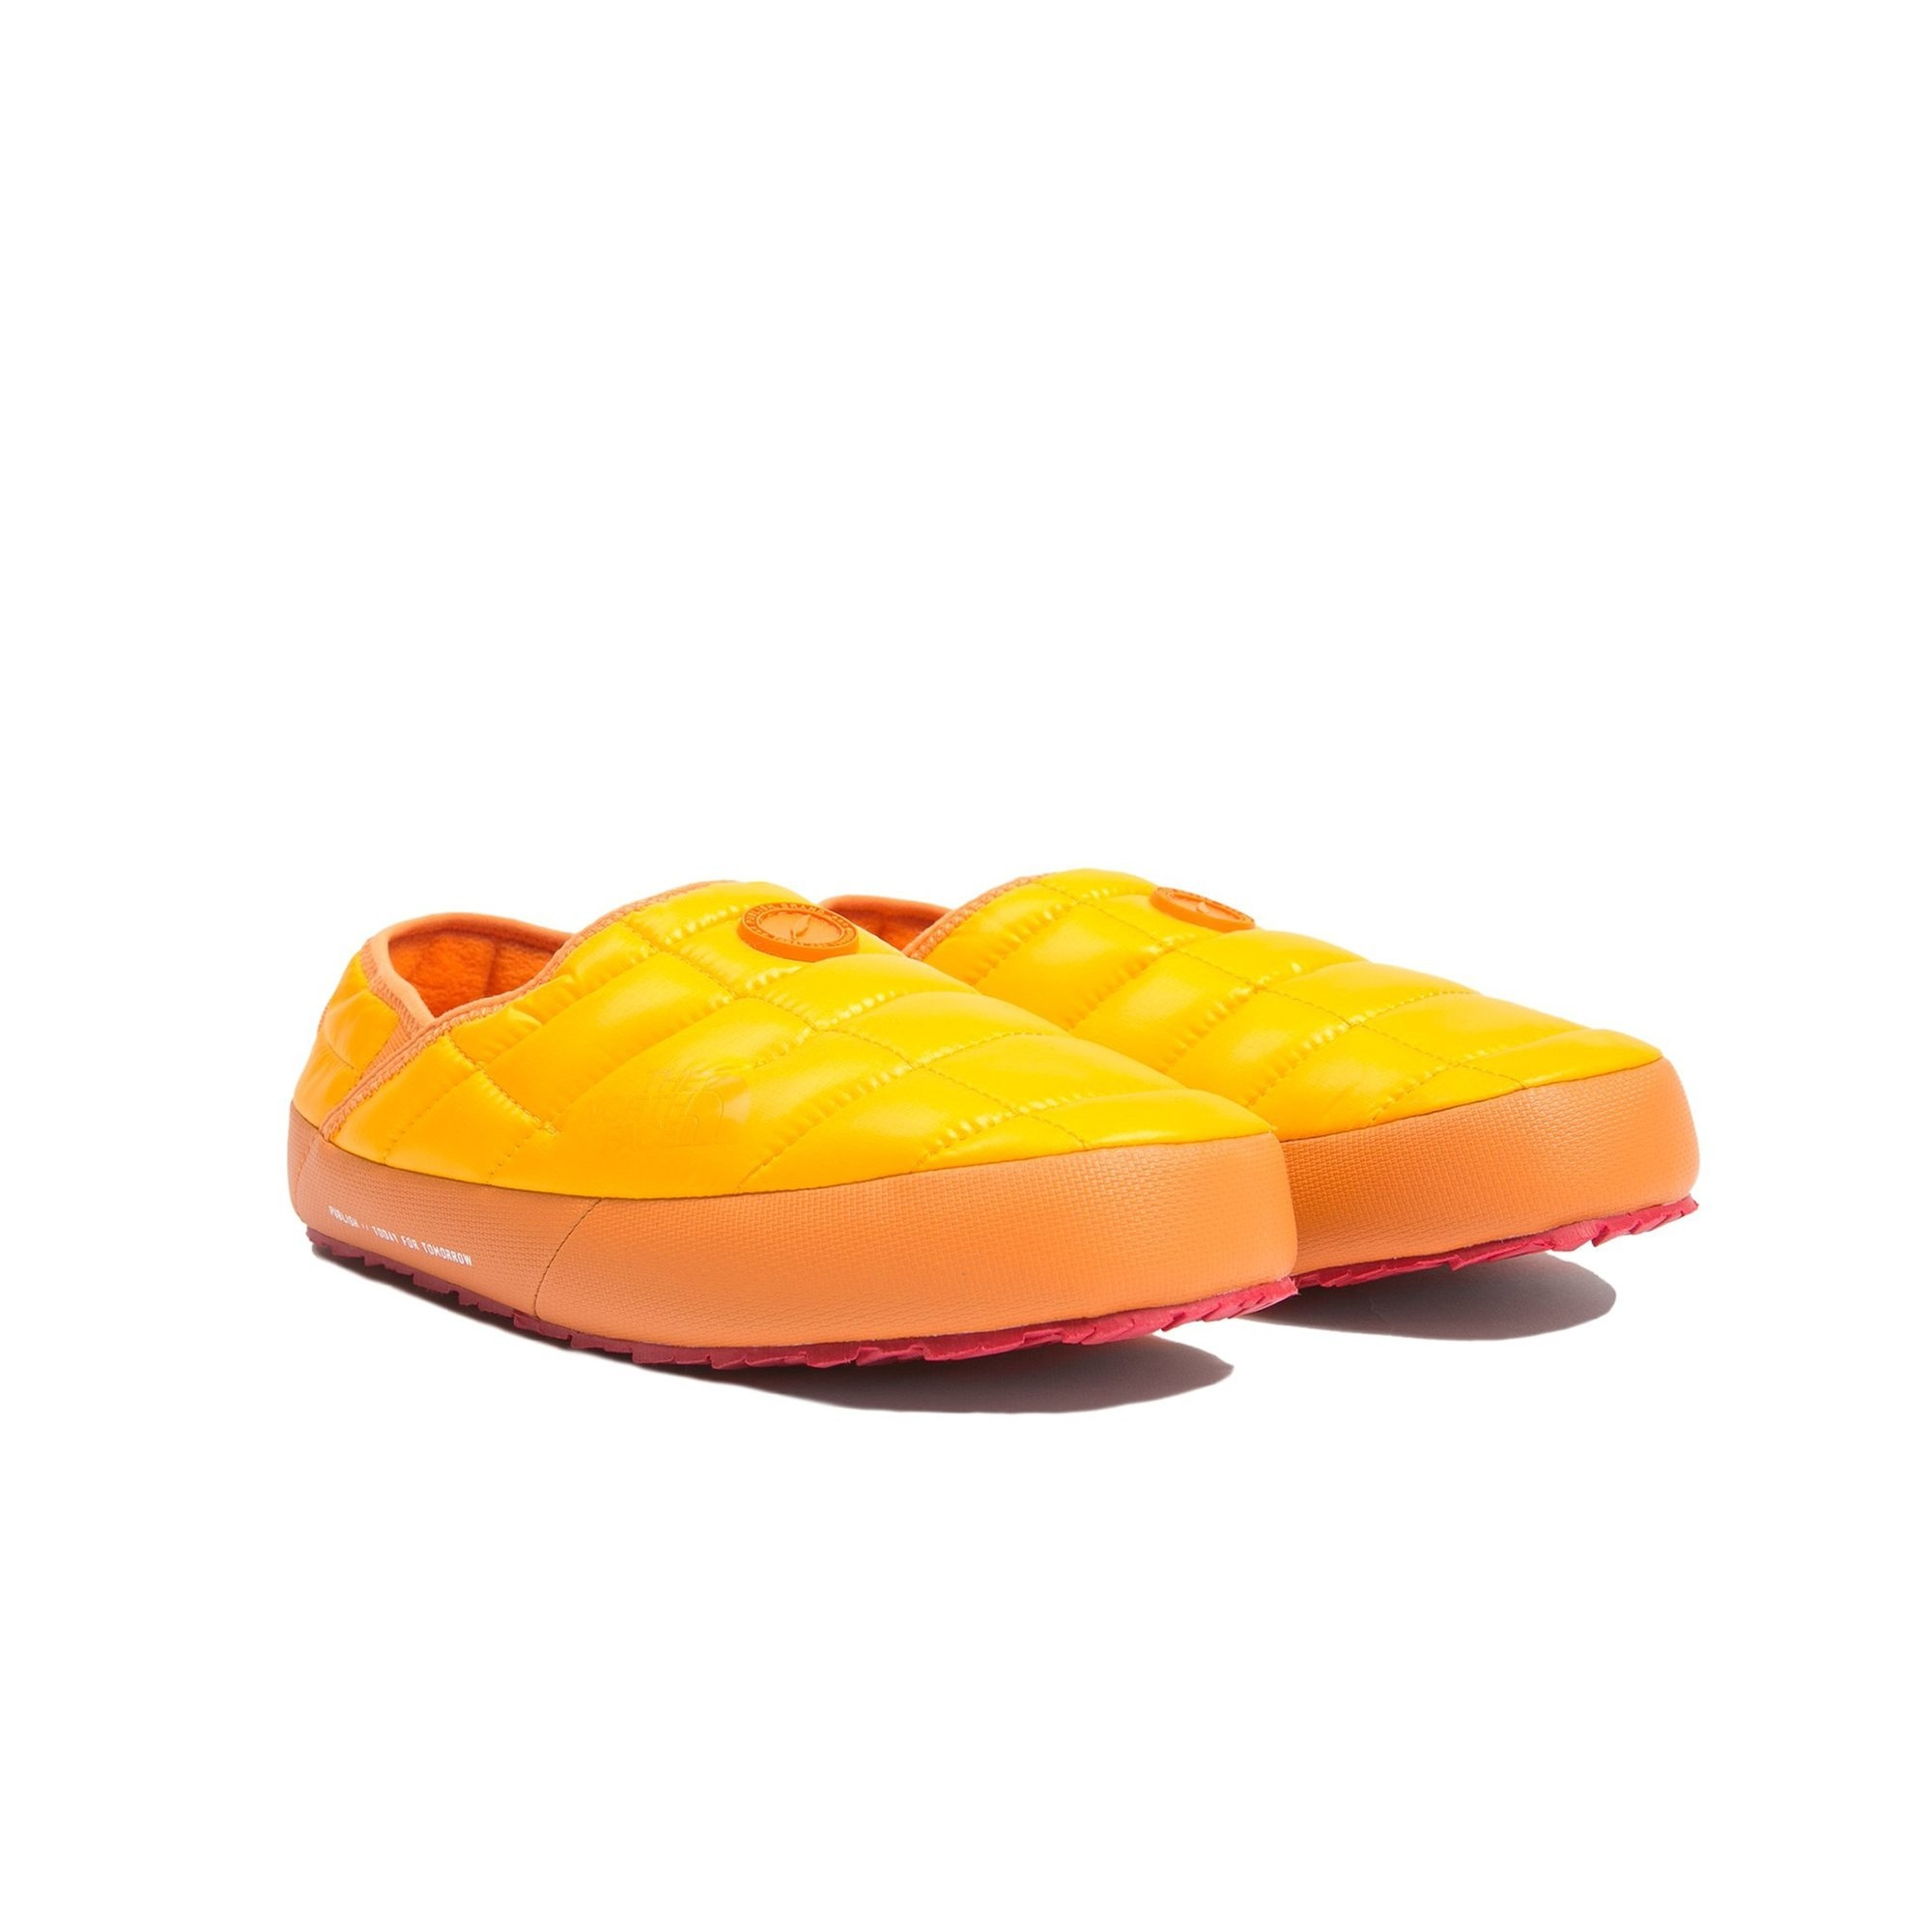 TNF Thermoball Traction Mule II (Orange)